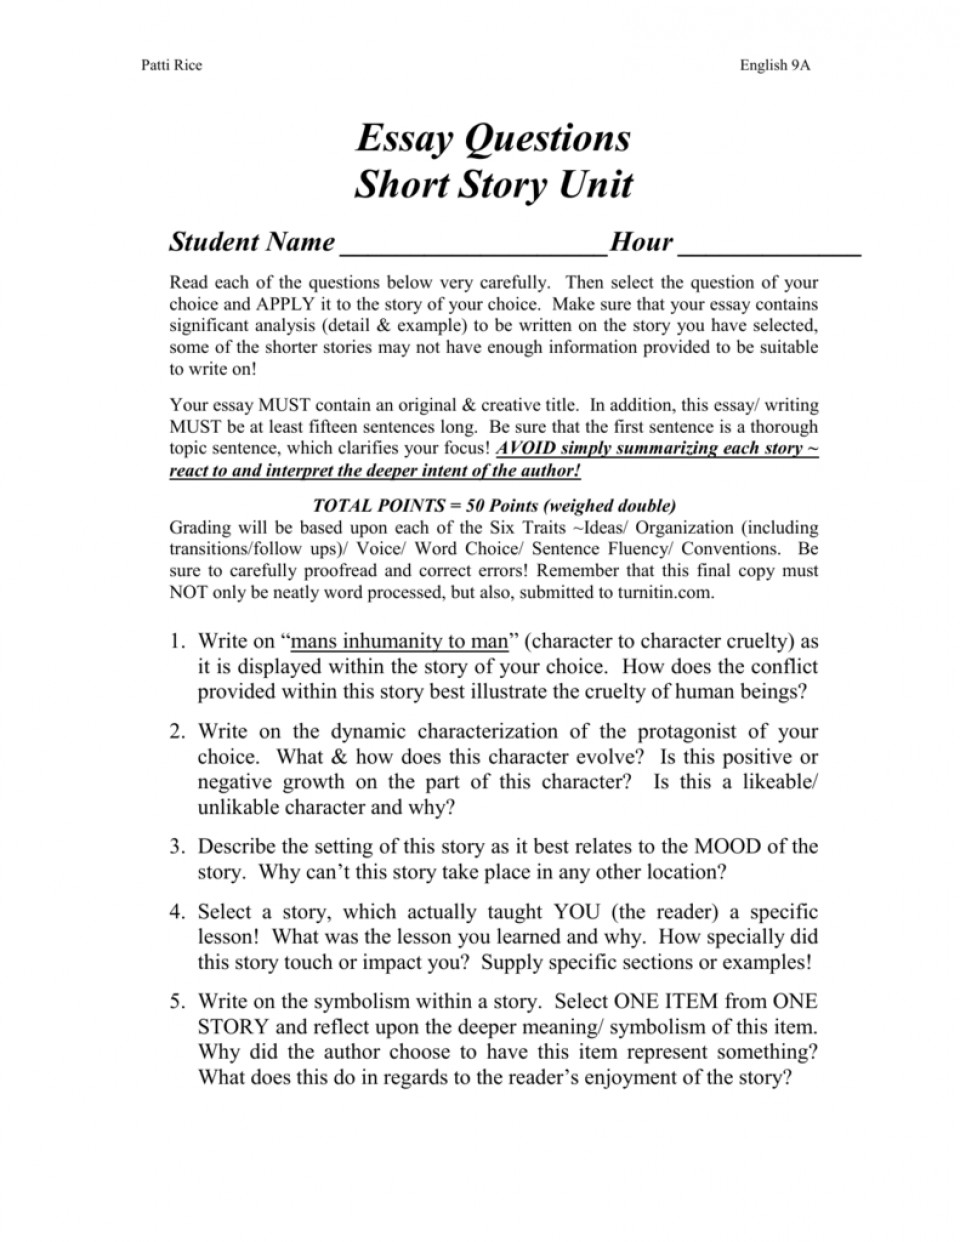 001 Essay Example Short Story 008001643 1 Incredible For College Analysis Assignment Writing Contest Philippines 960